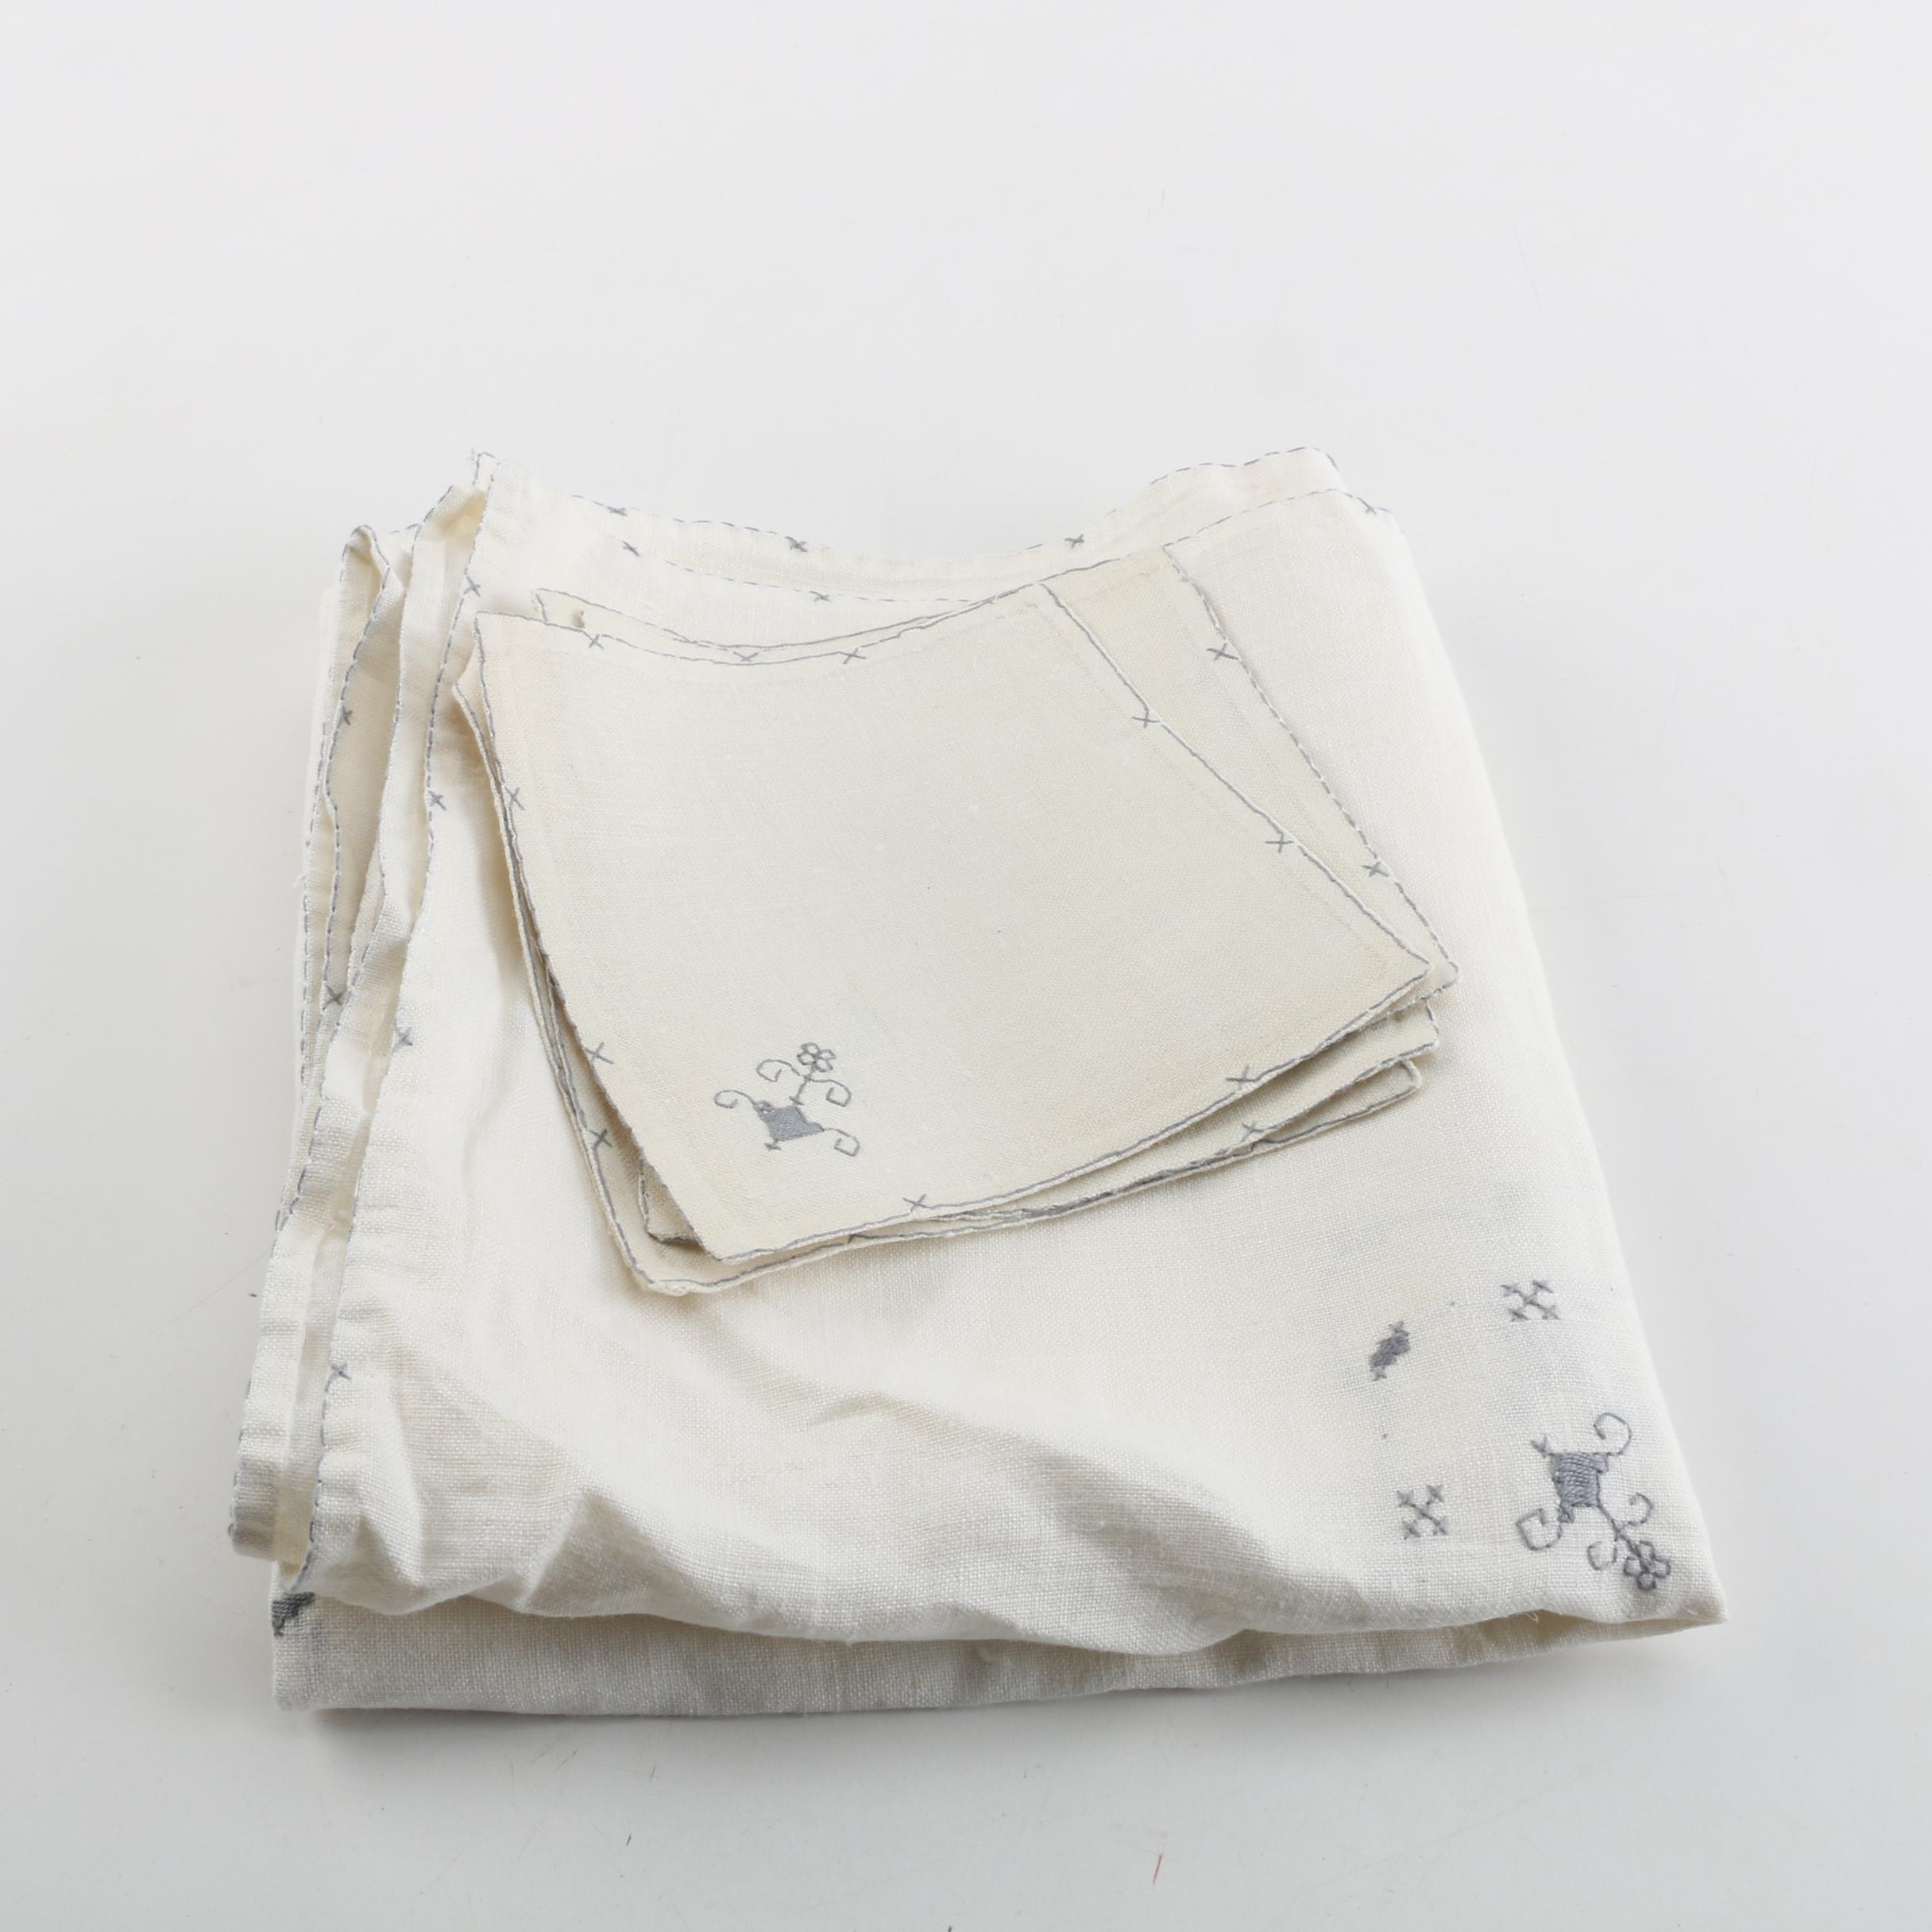 Hand Embroidered Cotton Tablecloth and Matching Napkins